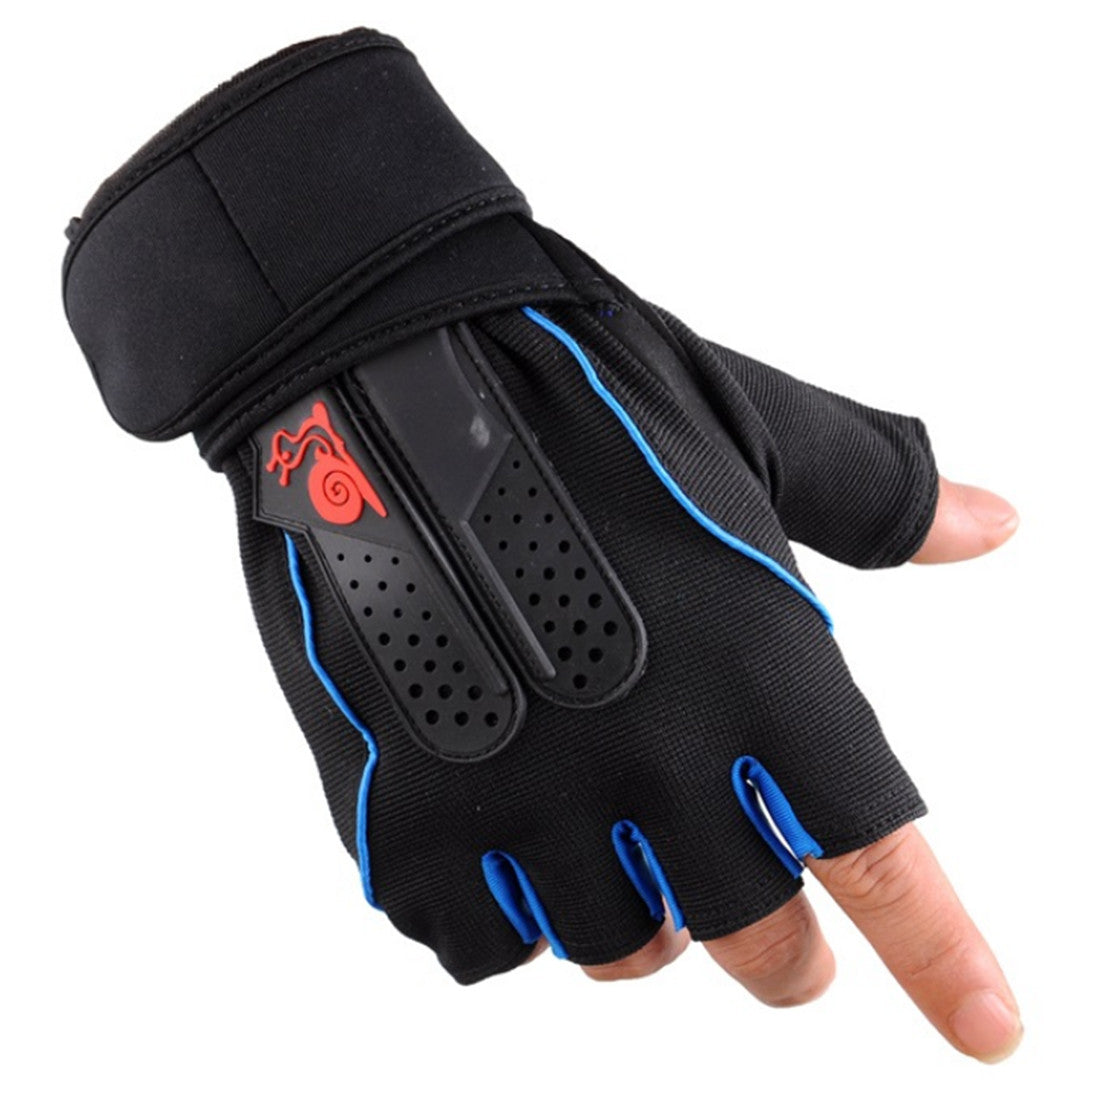 Extended Weight Lifting Gloves  Half Finger Protecting Band Breathable Non-slip Cycling Dumbbells Fitness Gloves Crossfit Sports